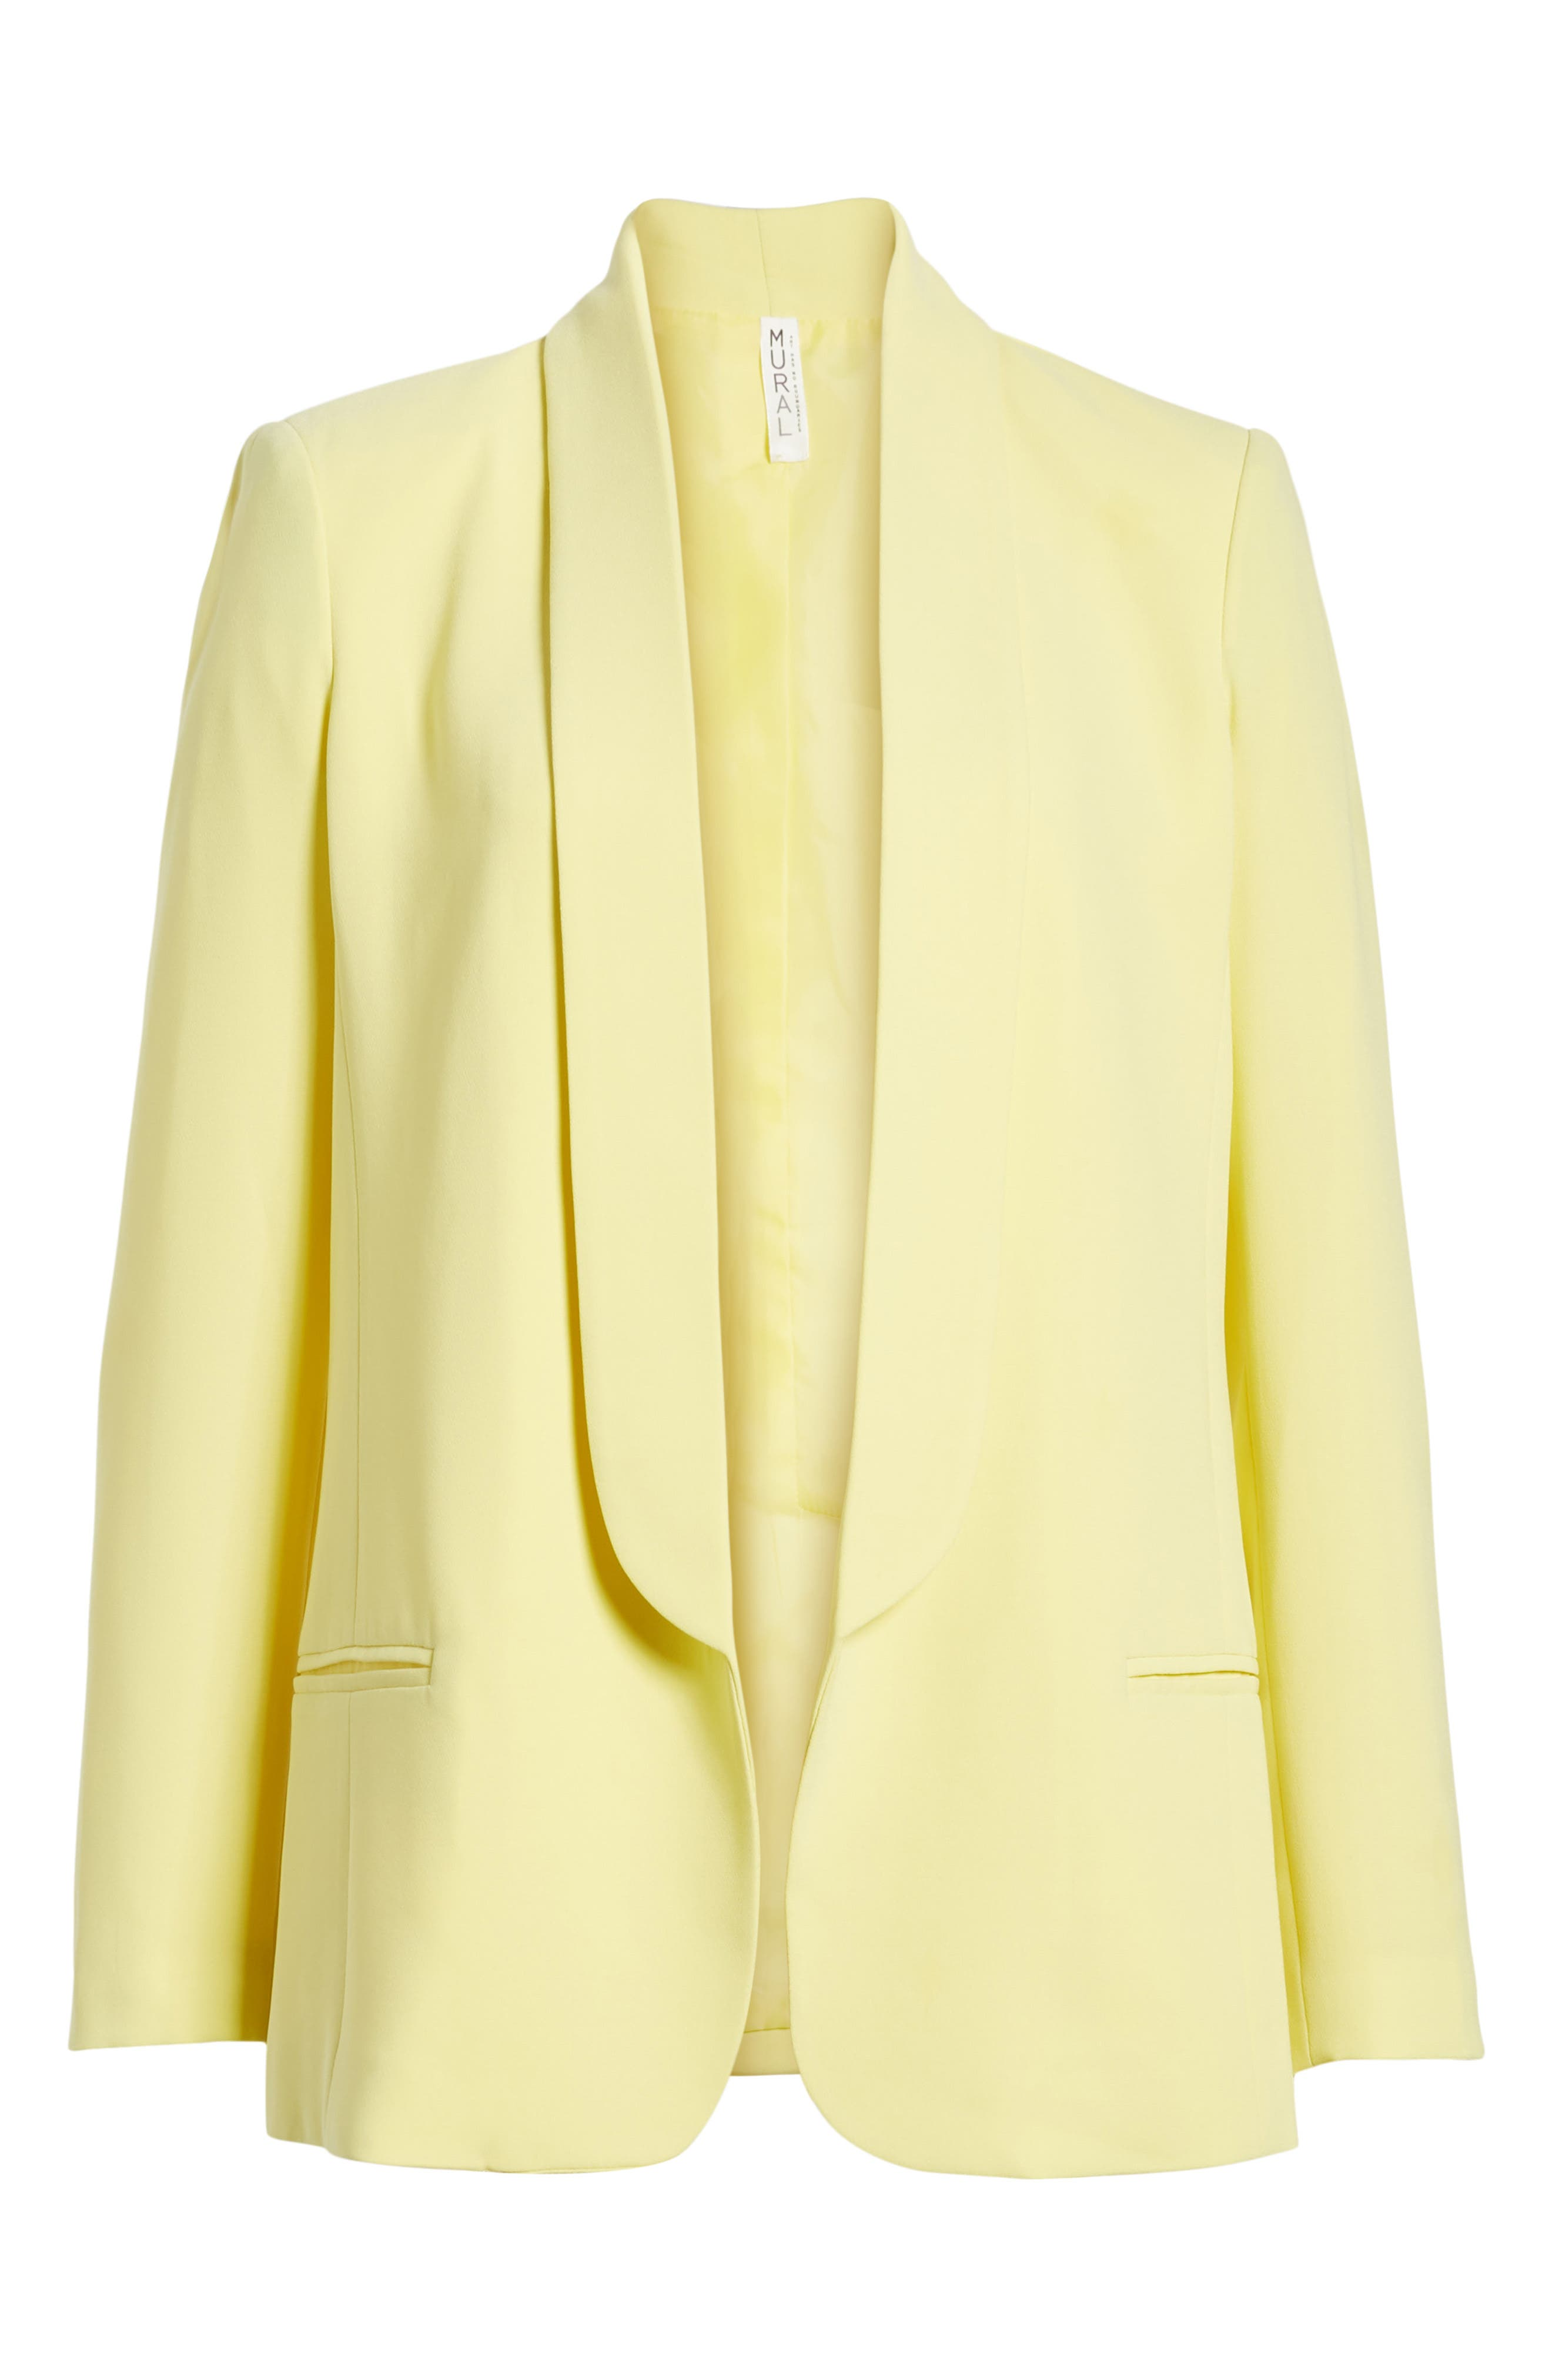 Slouchy Boyfriend Blazer,                             Alternate thumbnail 6, color,                             Yellow Canary